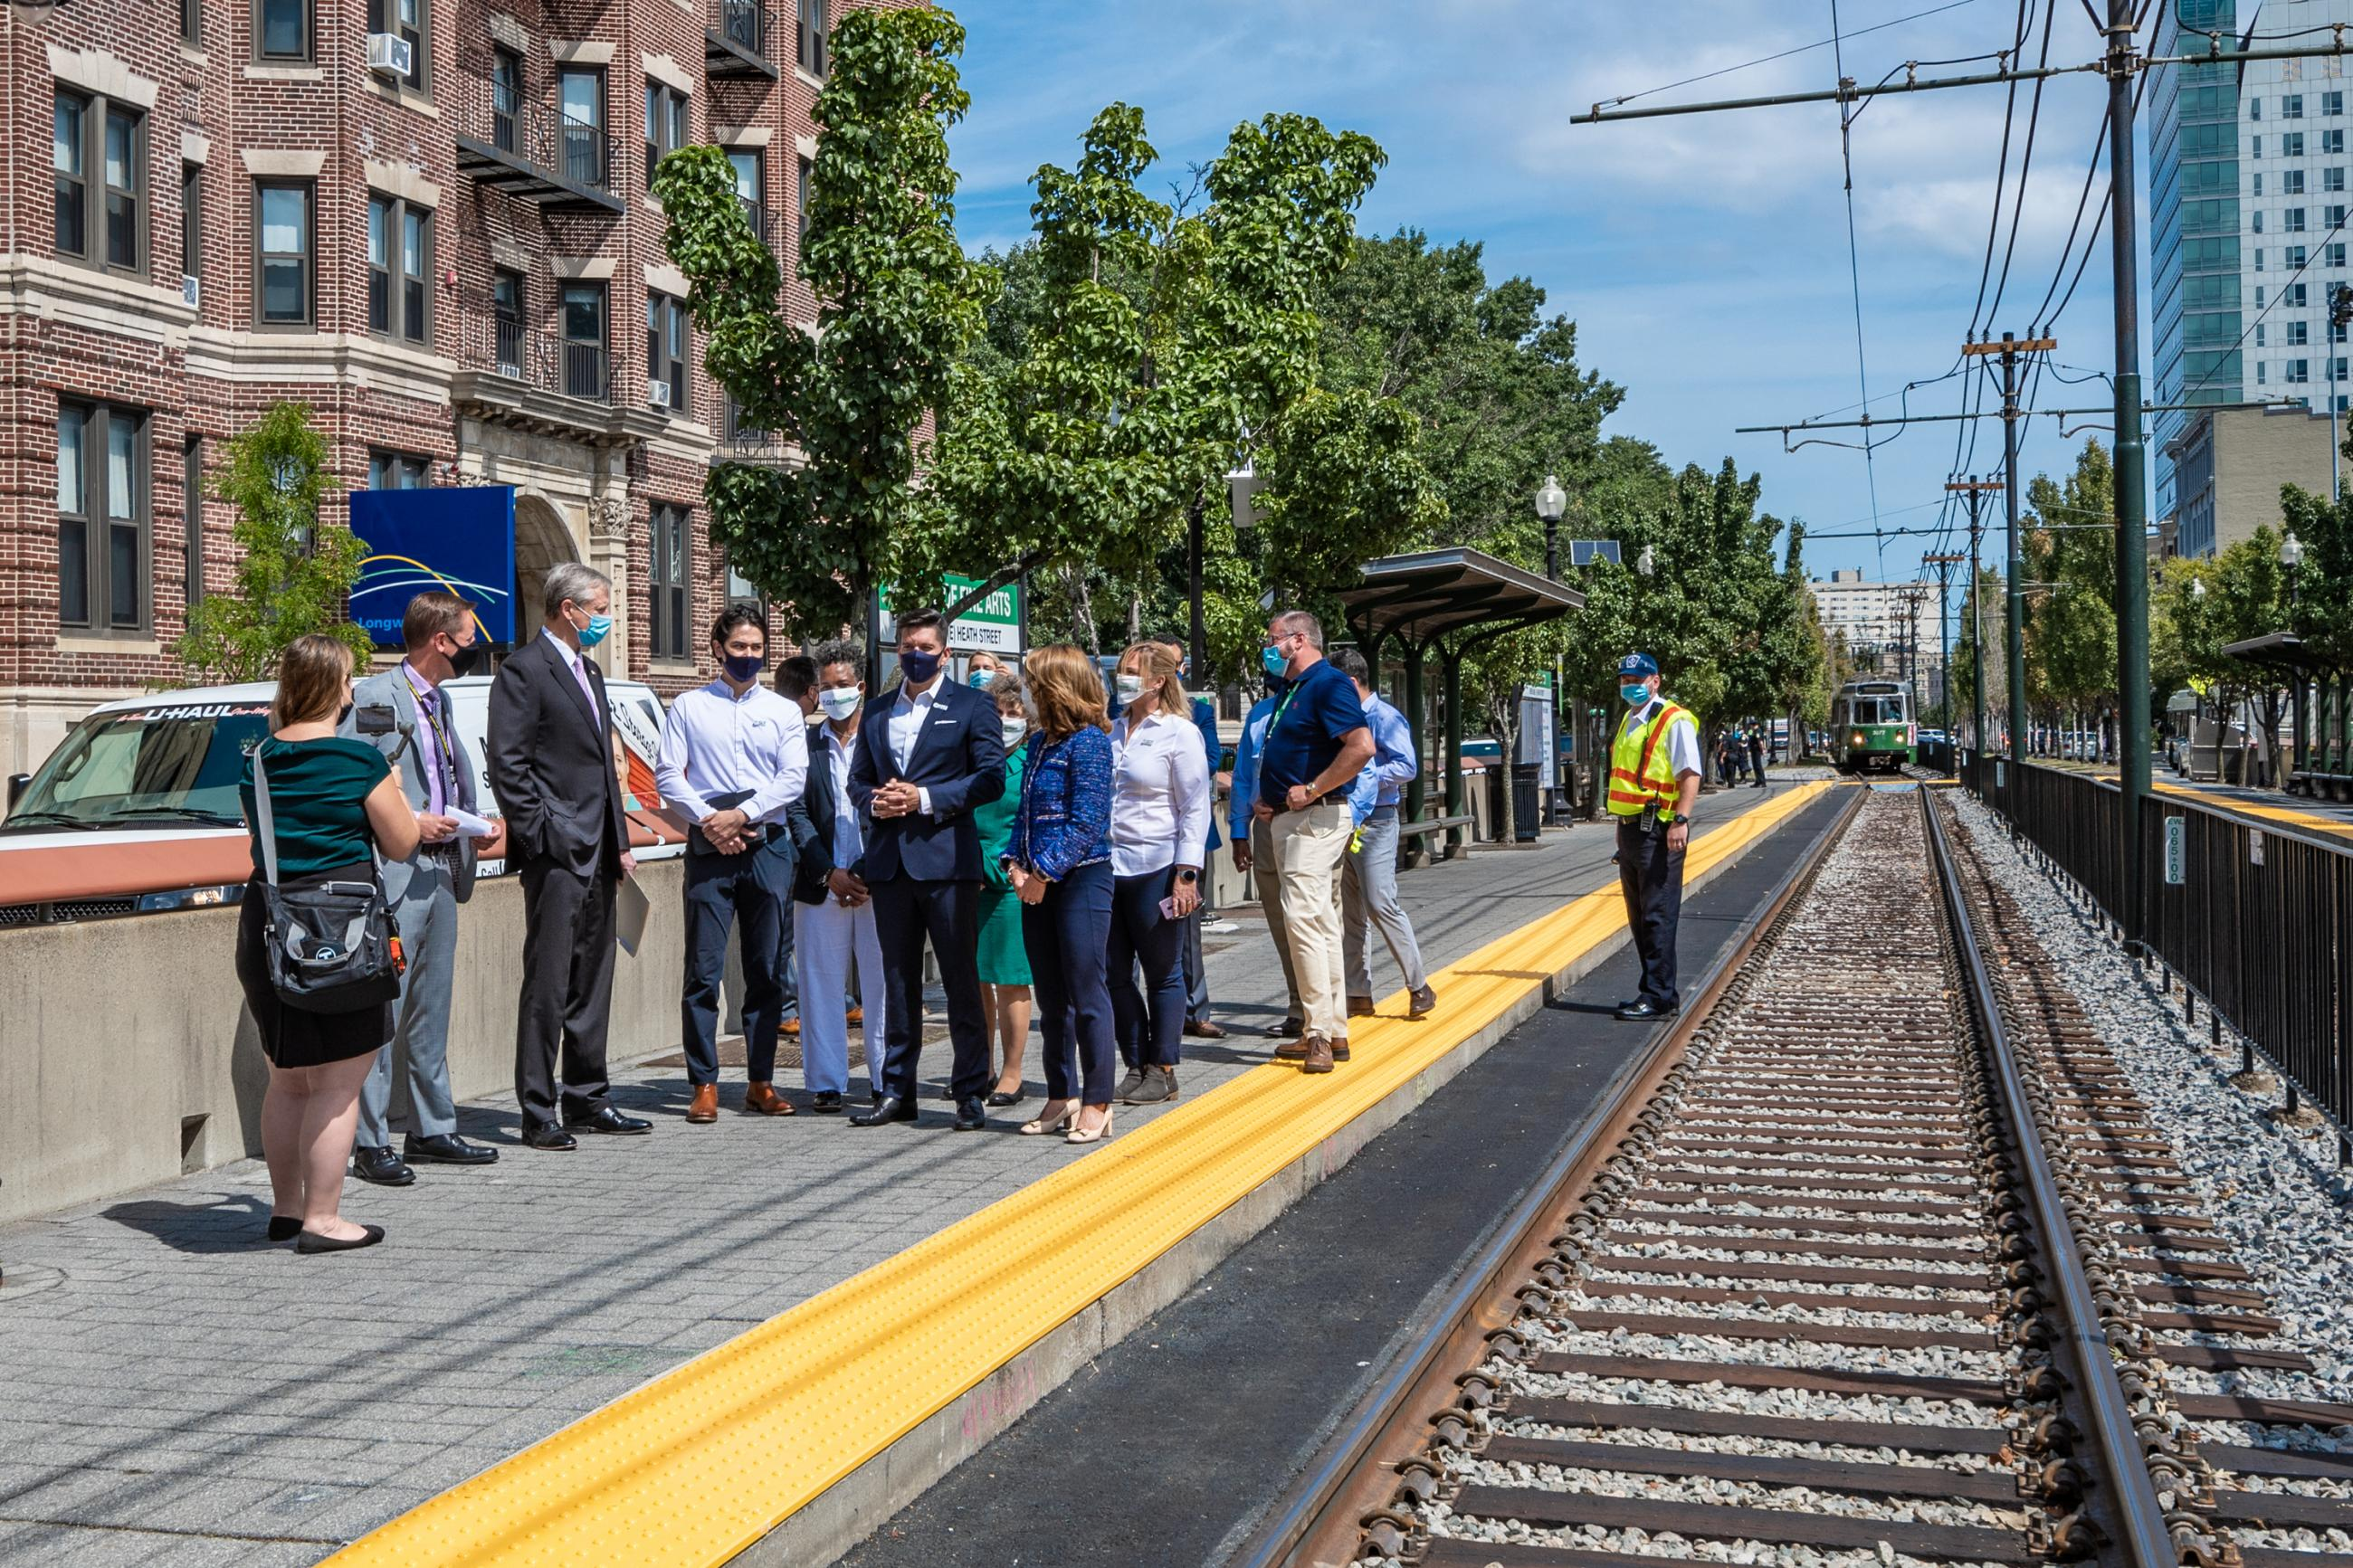 Governor Baker, Lieutenant Governor Polito, MassDOT Secretary Pollack, MBTA General Manager Poftak toured accelerated Green Line E Branch work at Museum of Fine Arts Station led by the MBTA's Green Line Transformation Team.